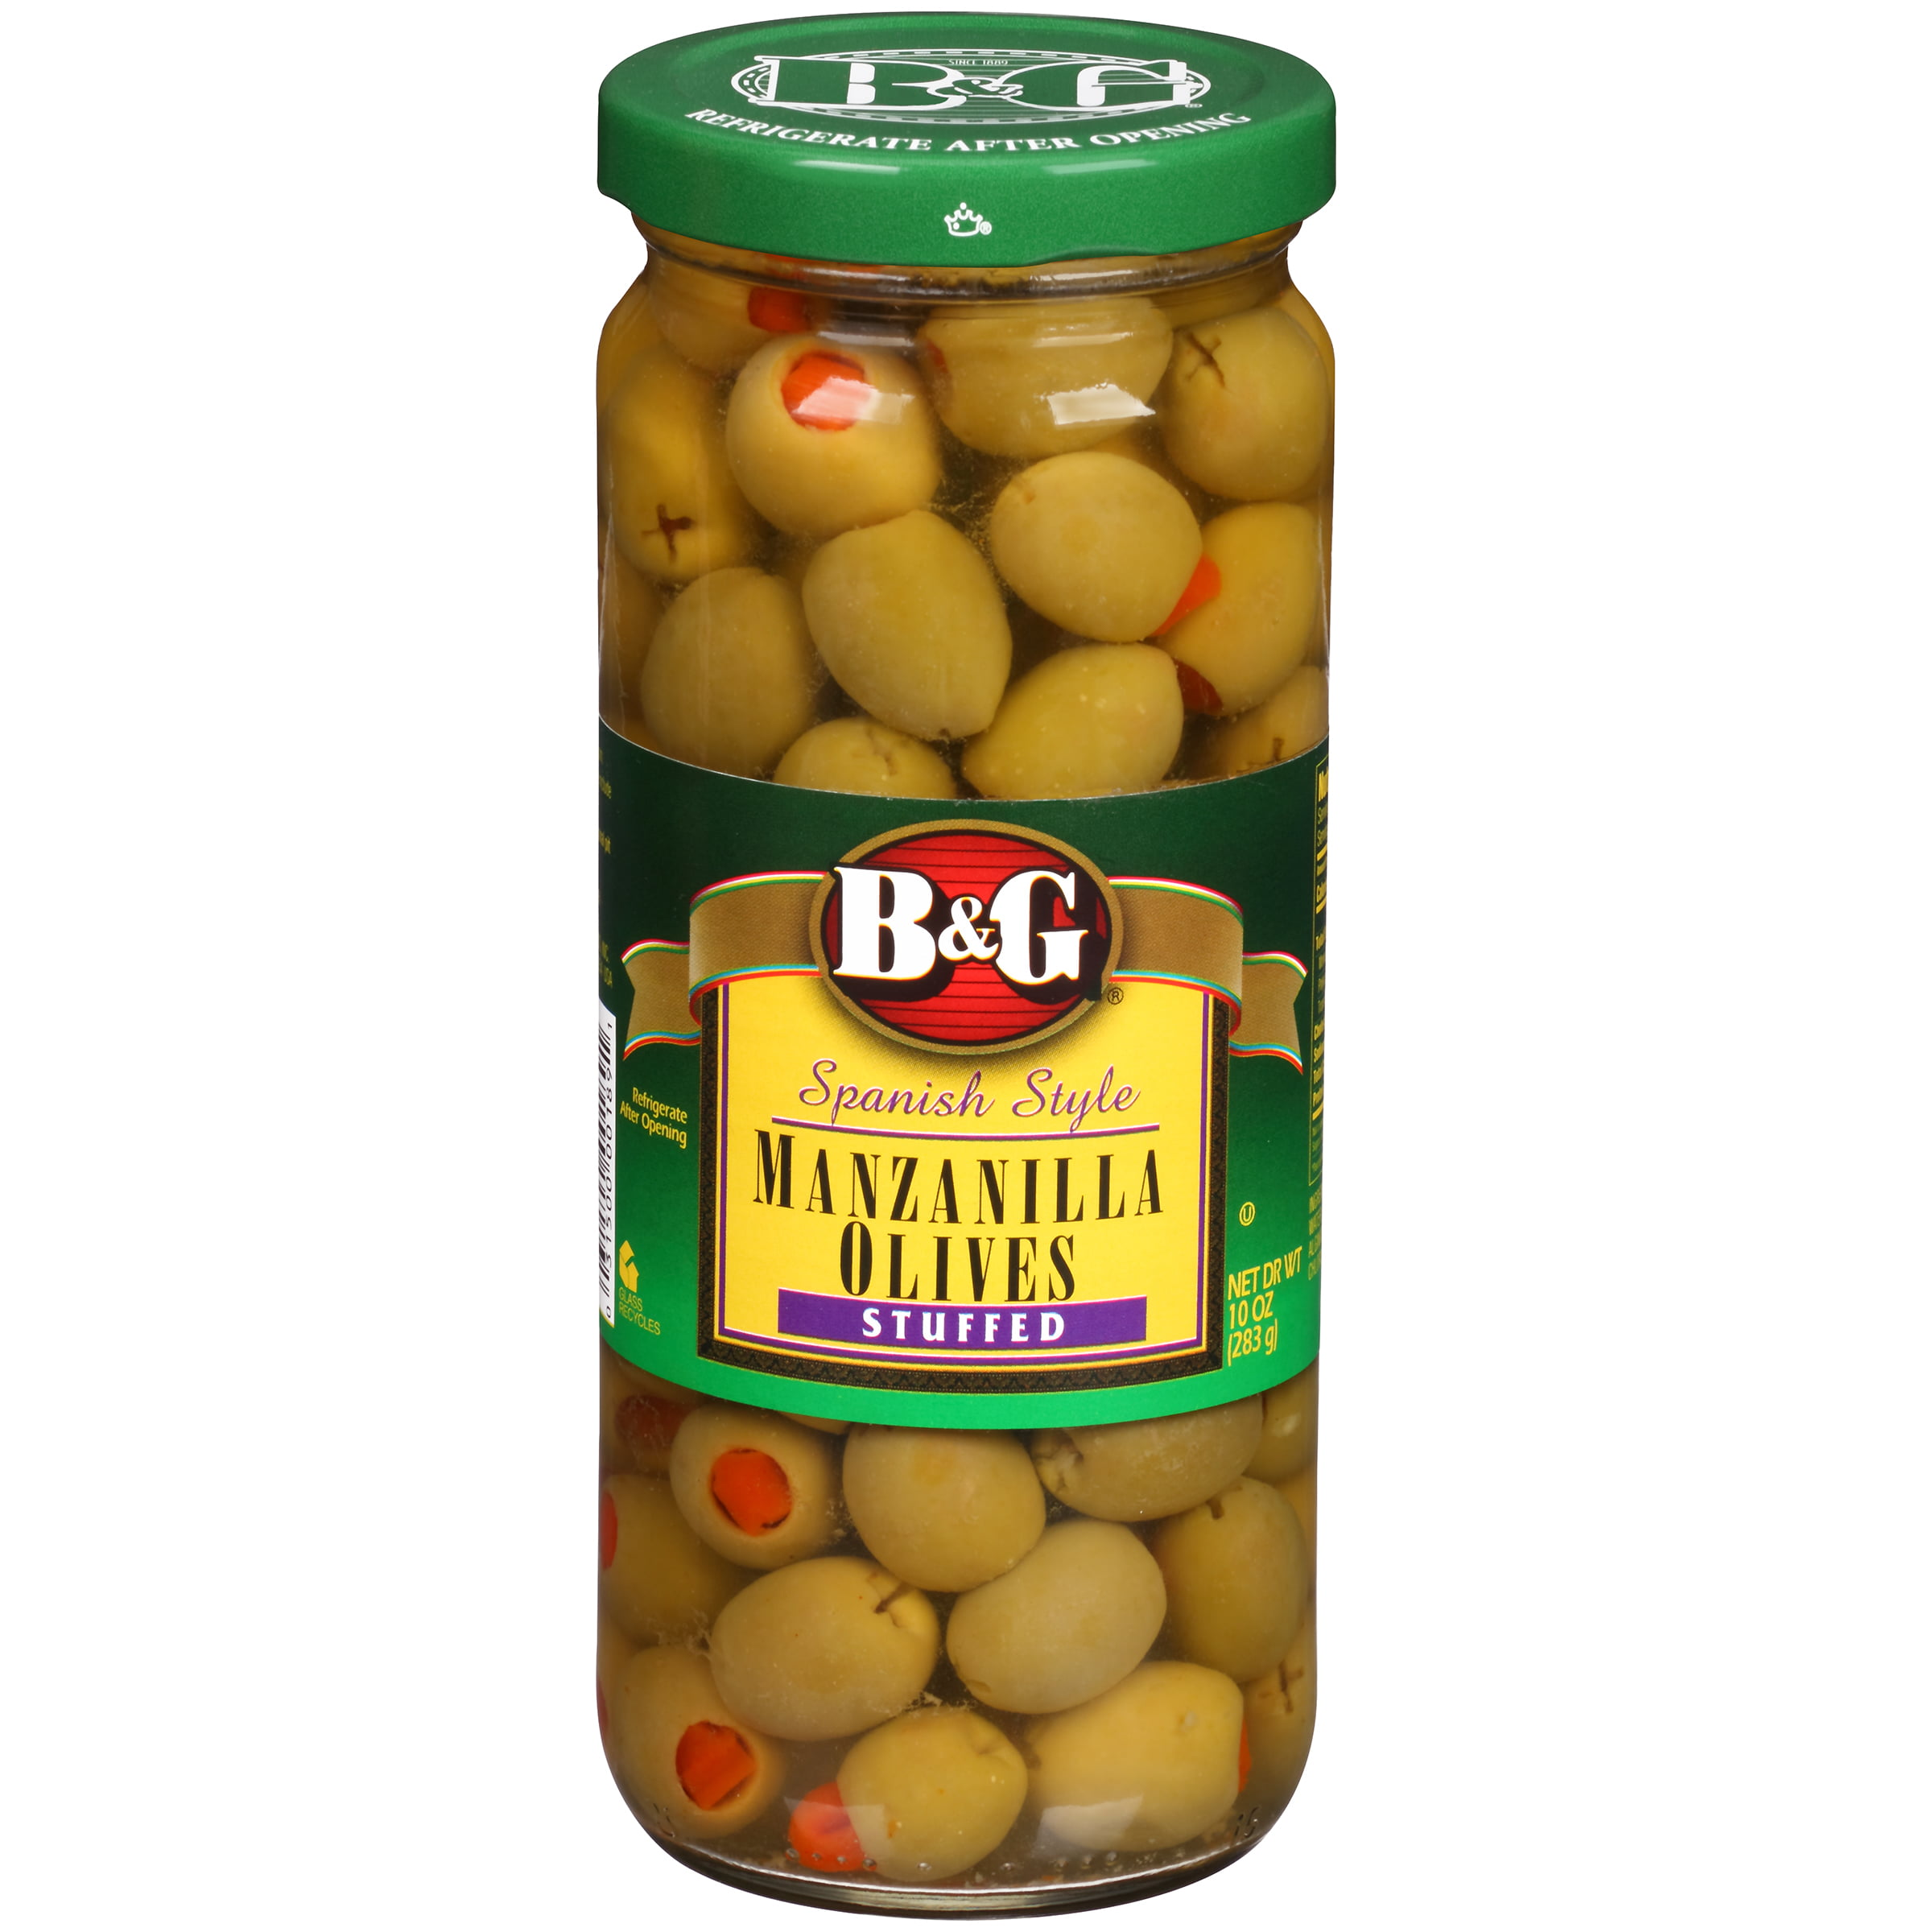 B&G Stuffed Olives Thrown Manzanilla, 10 Oz by B&G